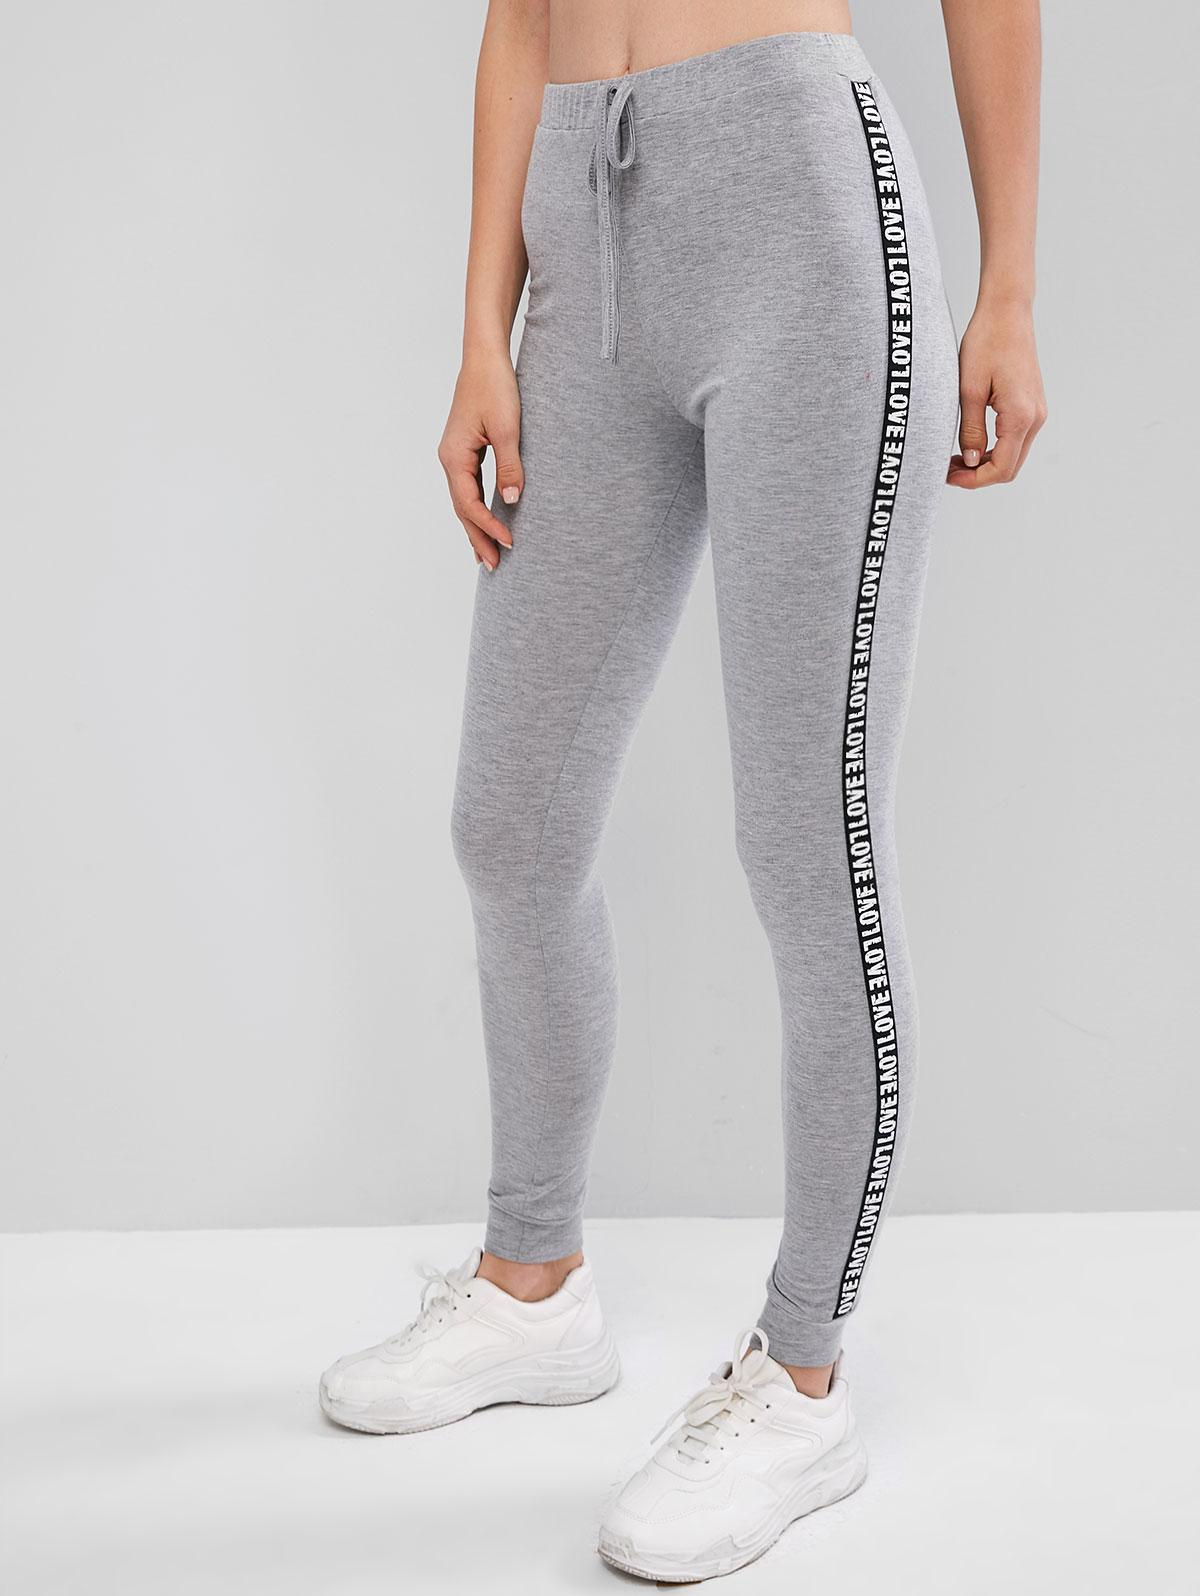 ZAFUL Letter Patched Heathered Tied Leggings